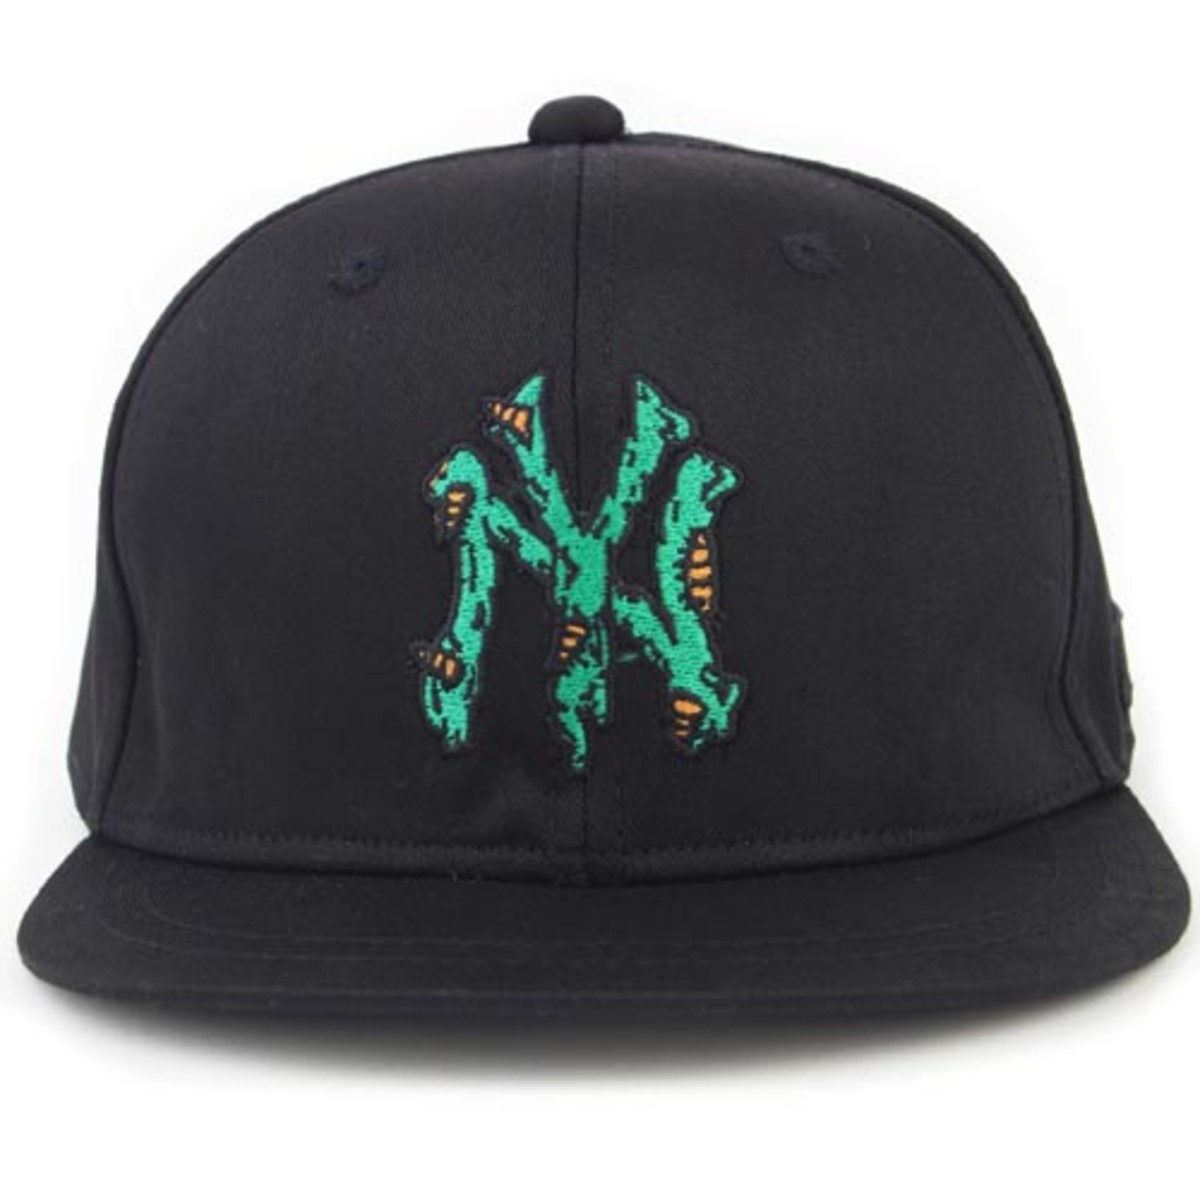 NYC Cap Black 3